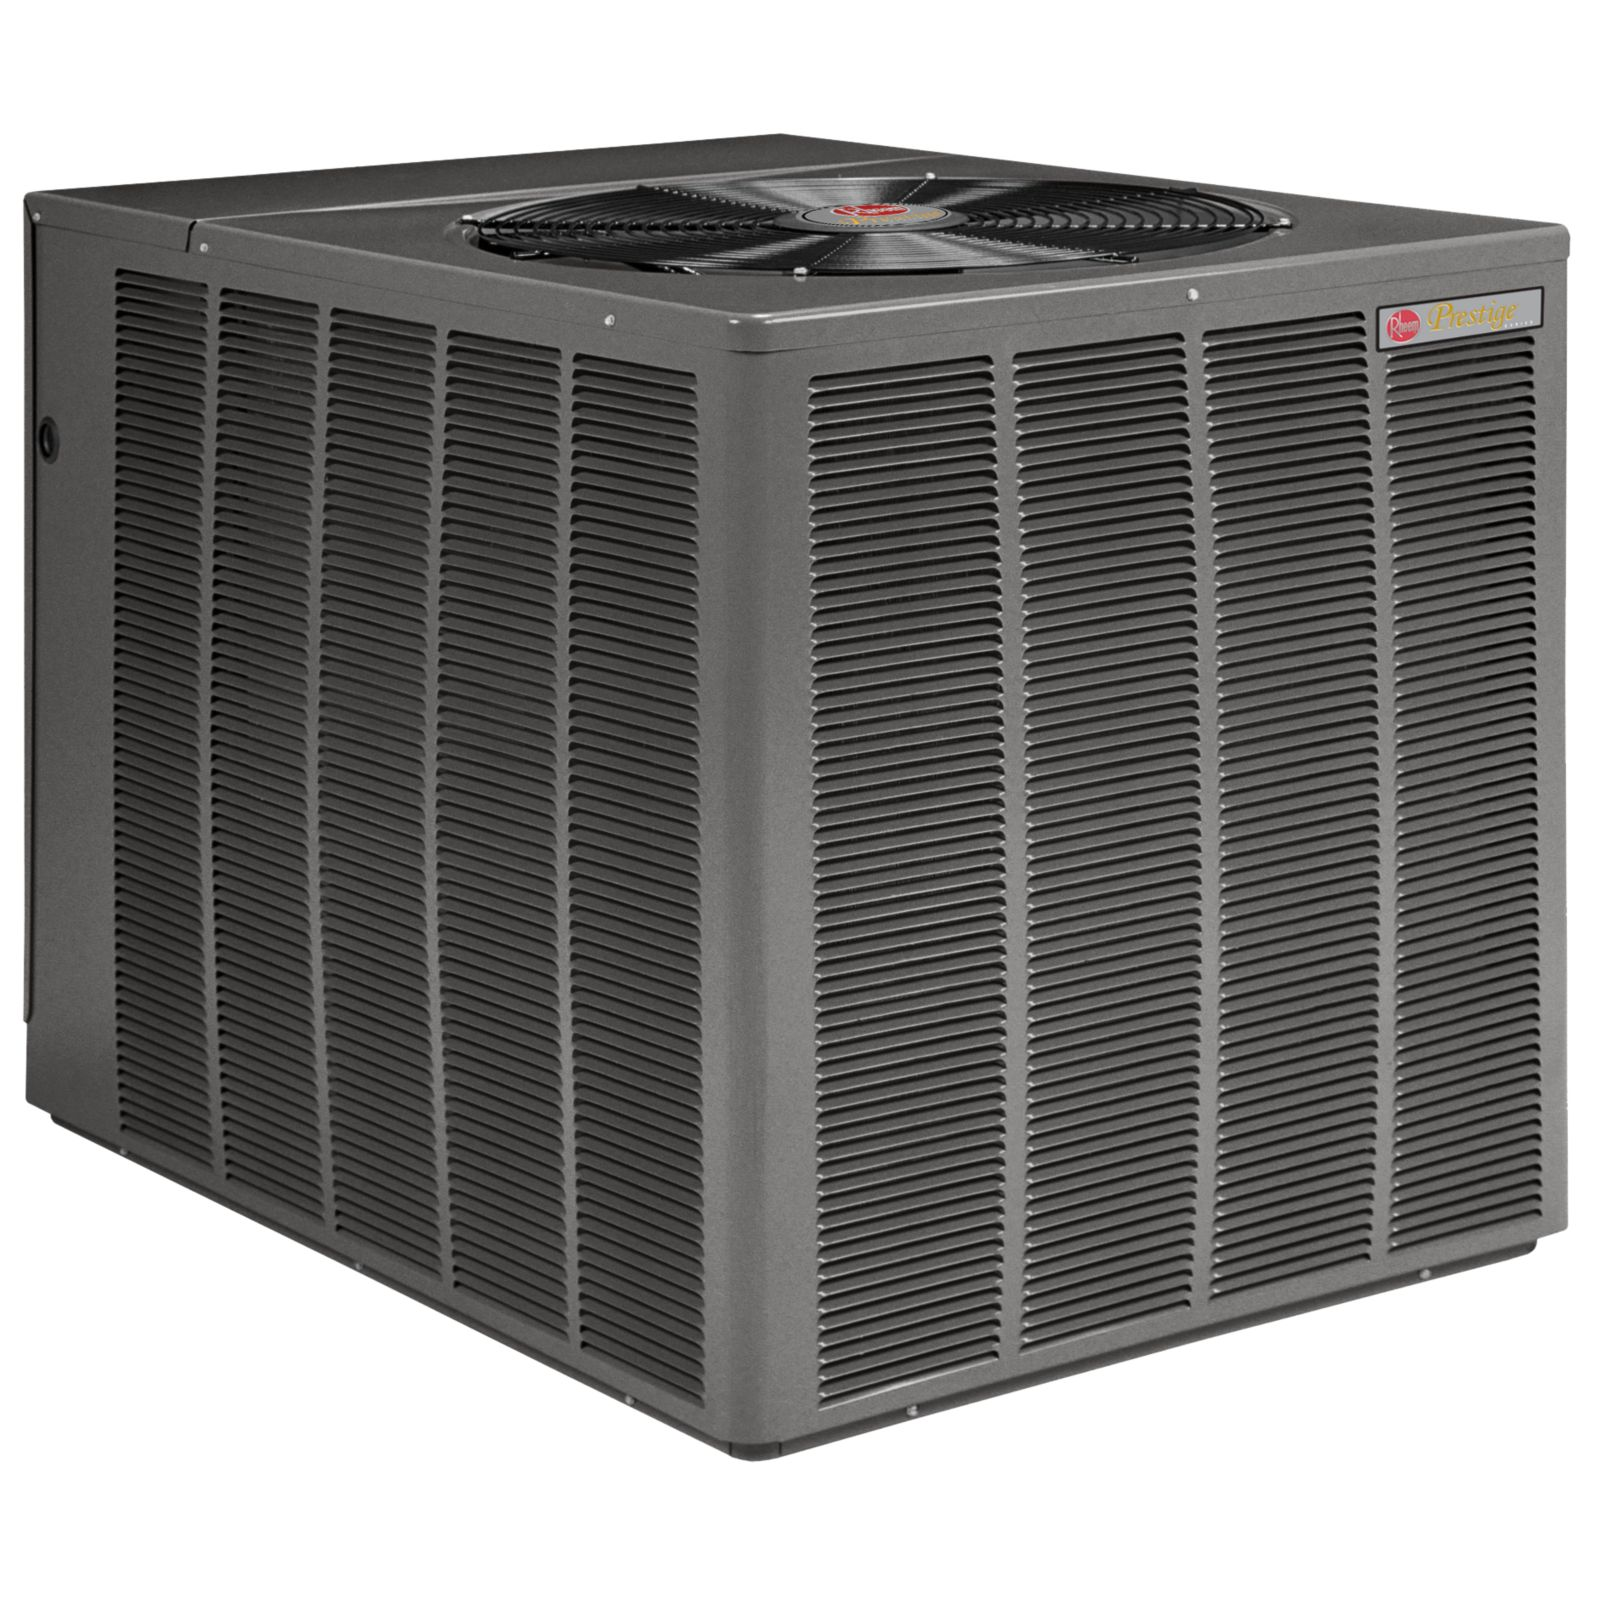 Rheem RARL-038JEC - Prestige Series 3 Ton, 16 SEER, R410A Air Conditioner Condenser , 2-Stage With Comfort Control2